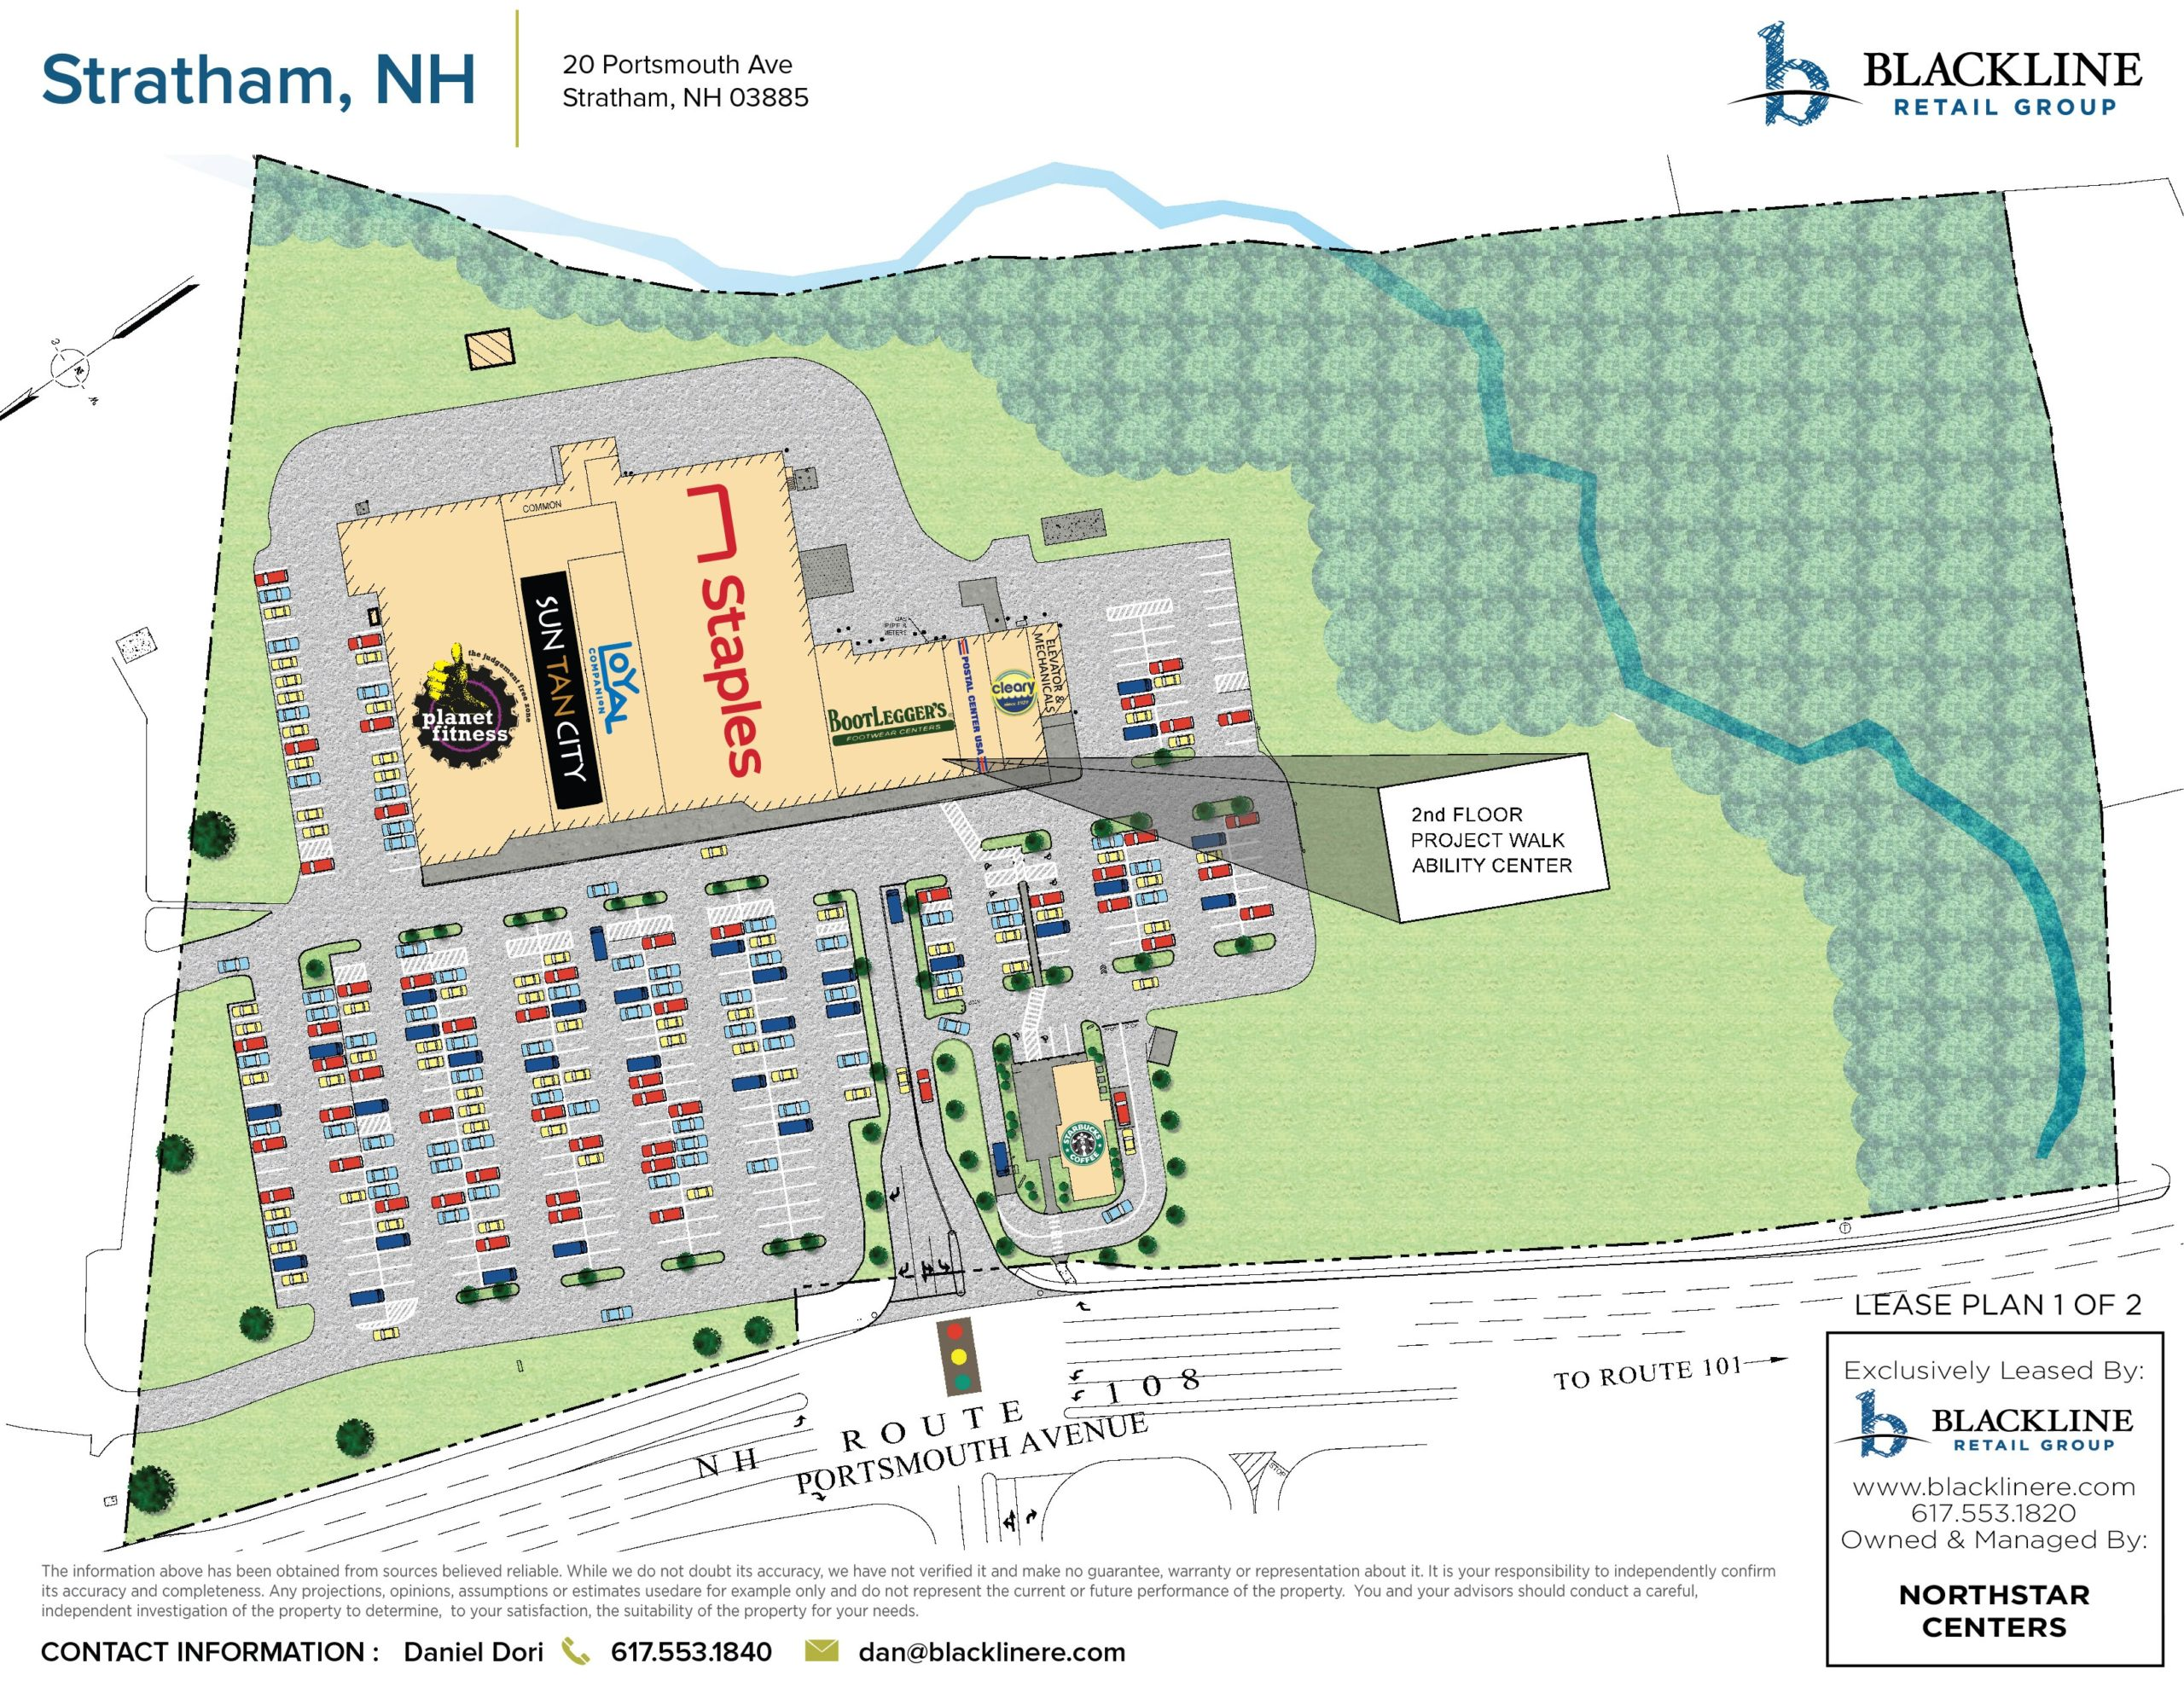 Parkman Brook Shopping Center store space for rent with Blackline Retail Group